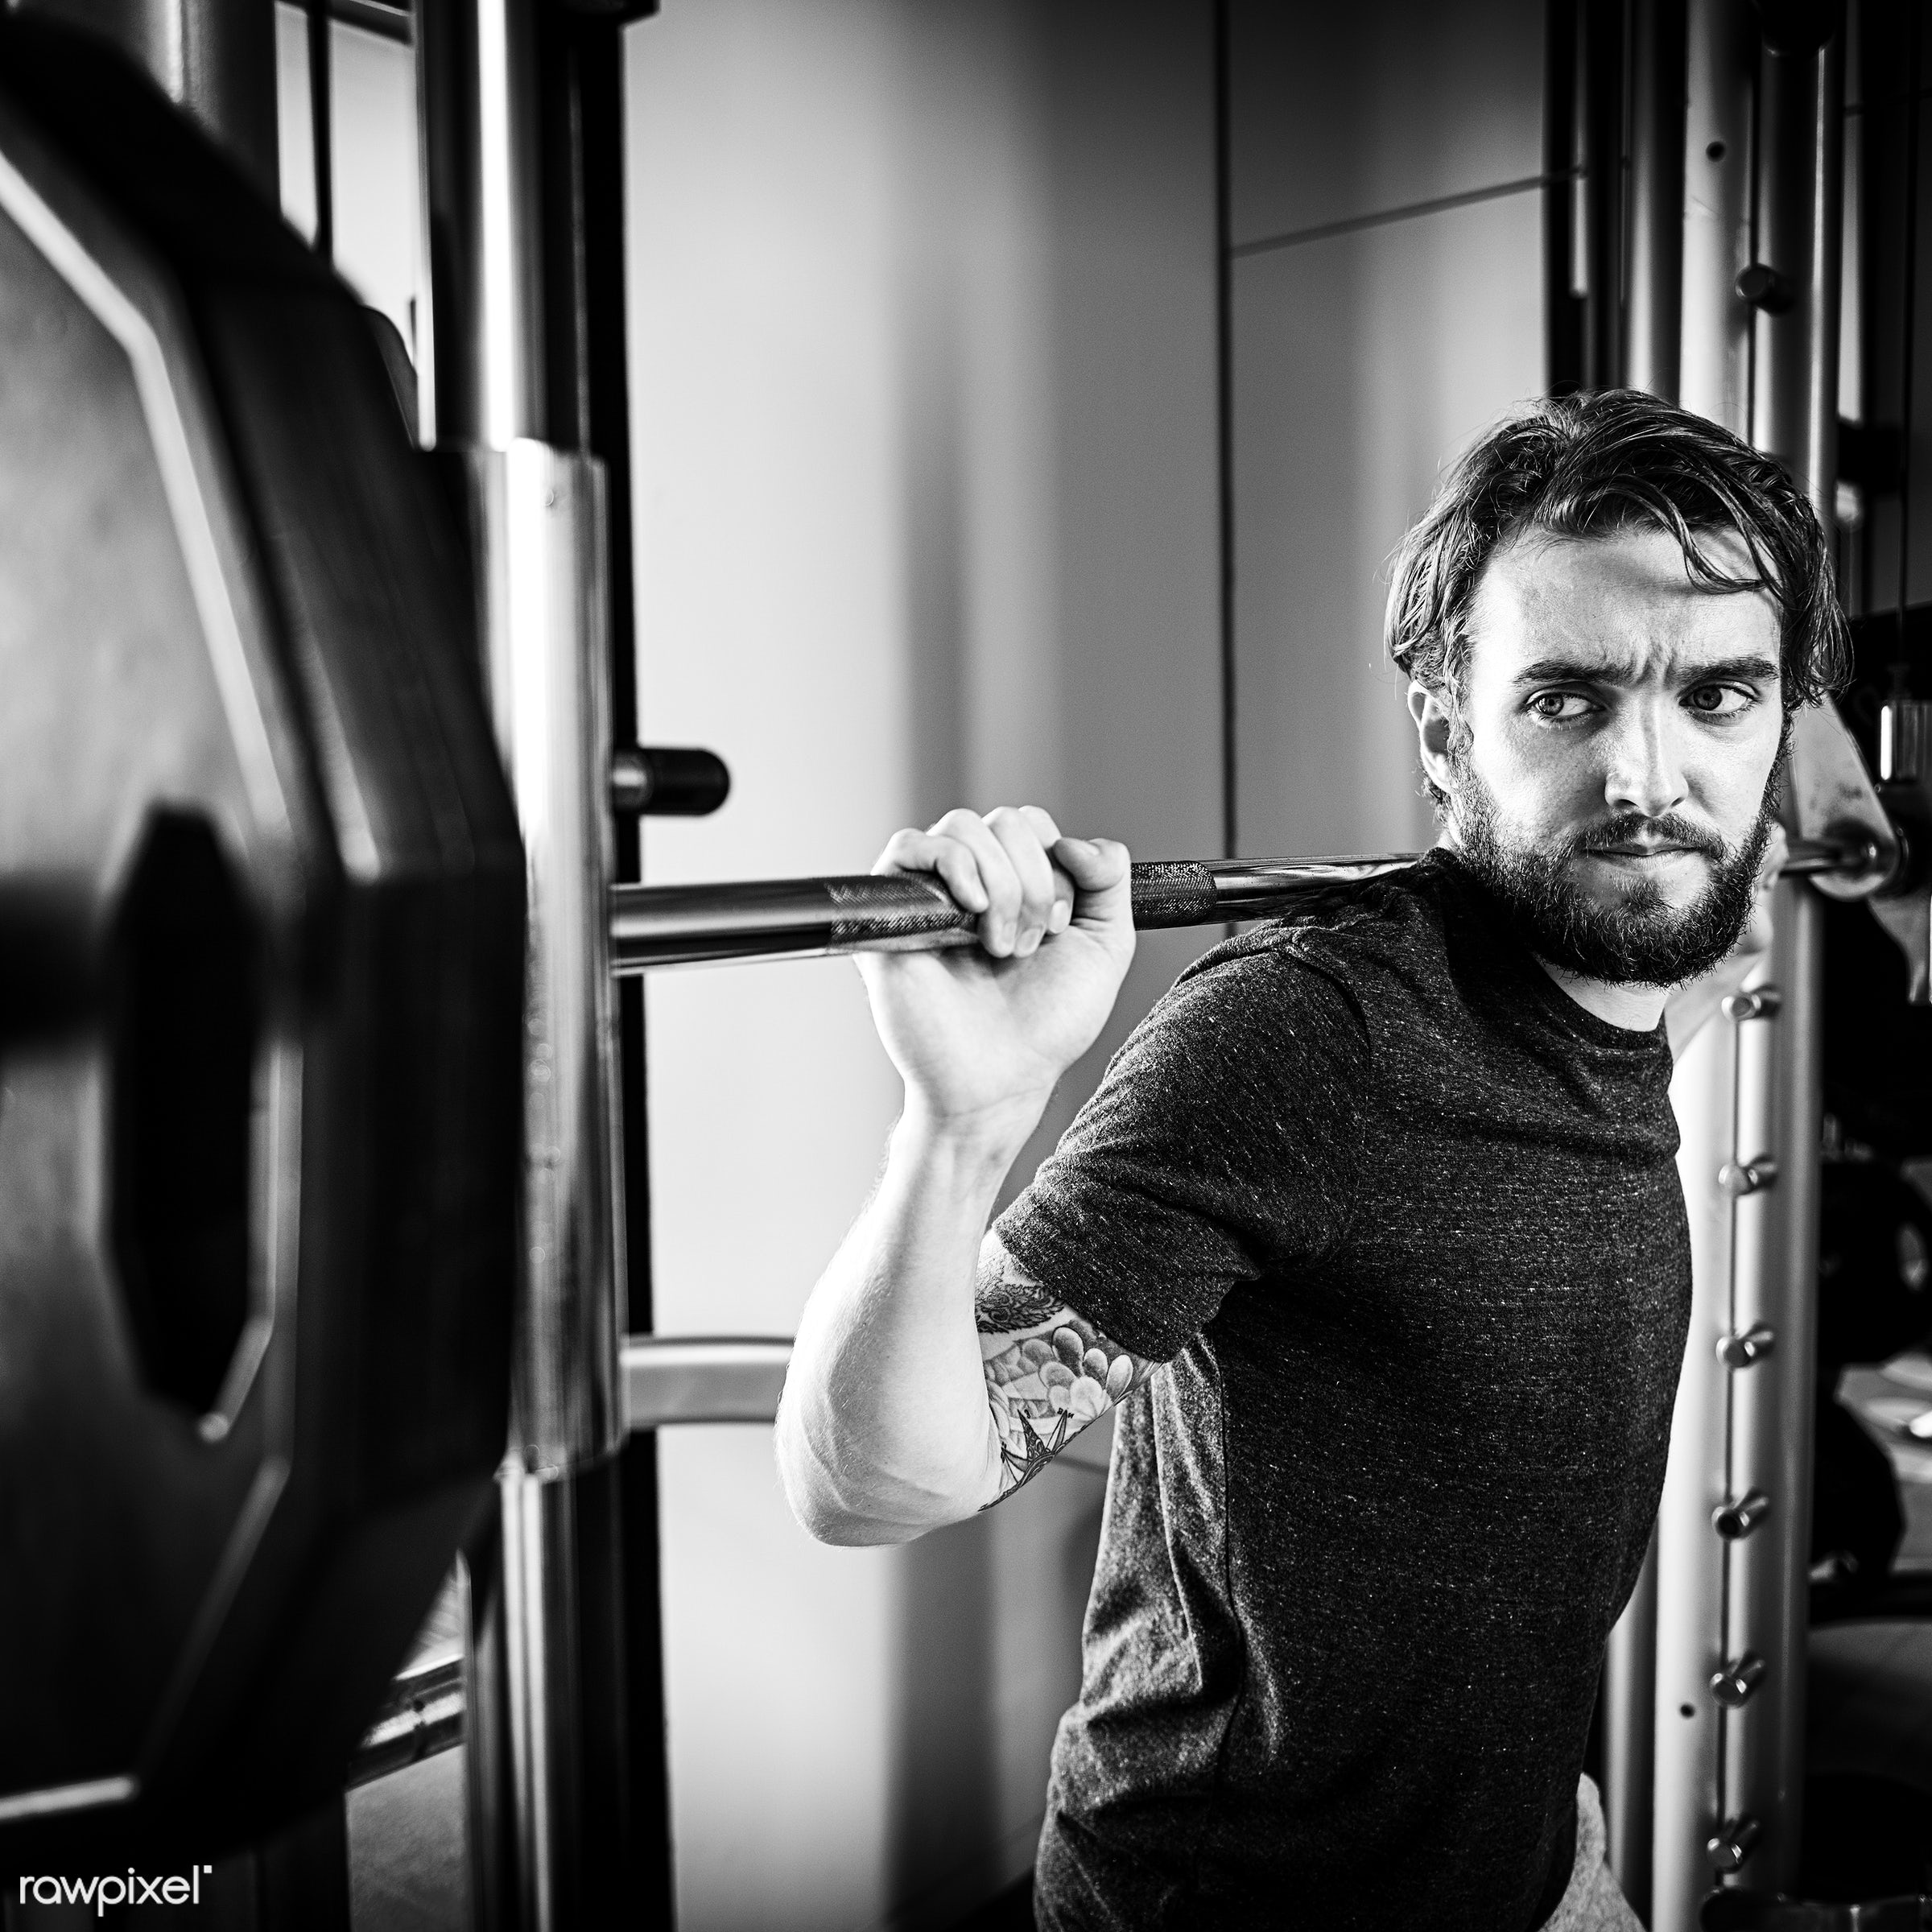 active, adult, athlete, athletic, attractive, barbell, body, bodybuilding, building, cheerful, dumbbell, equipment, exercise...